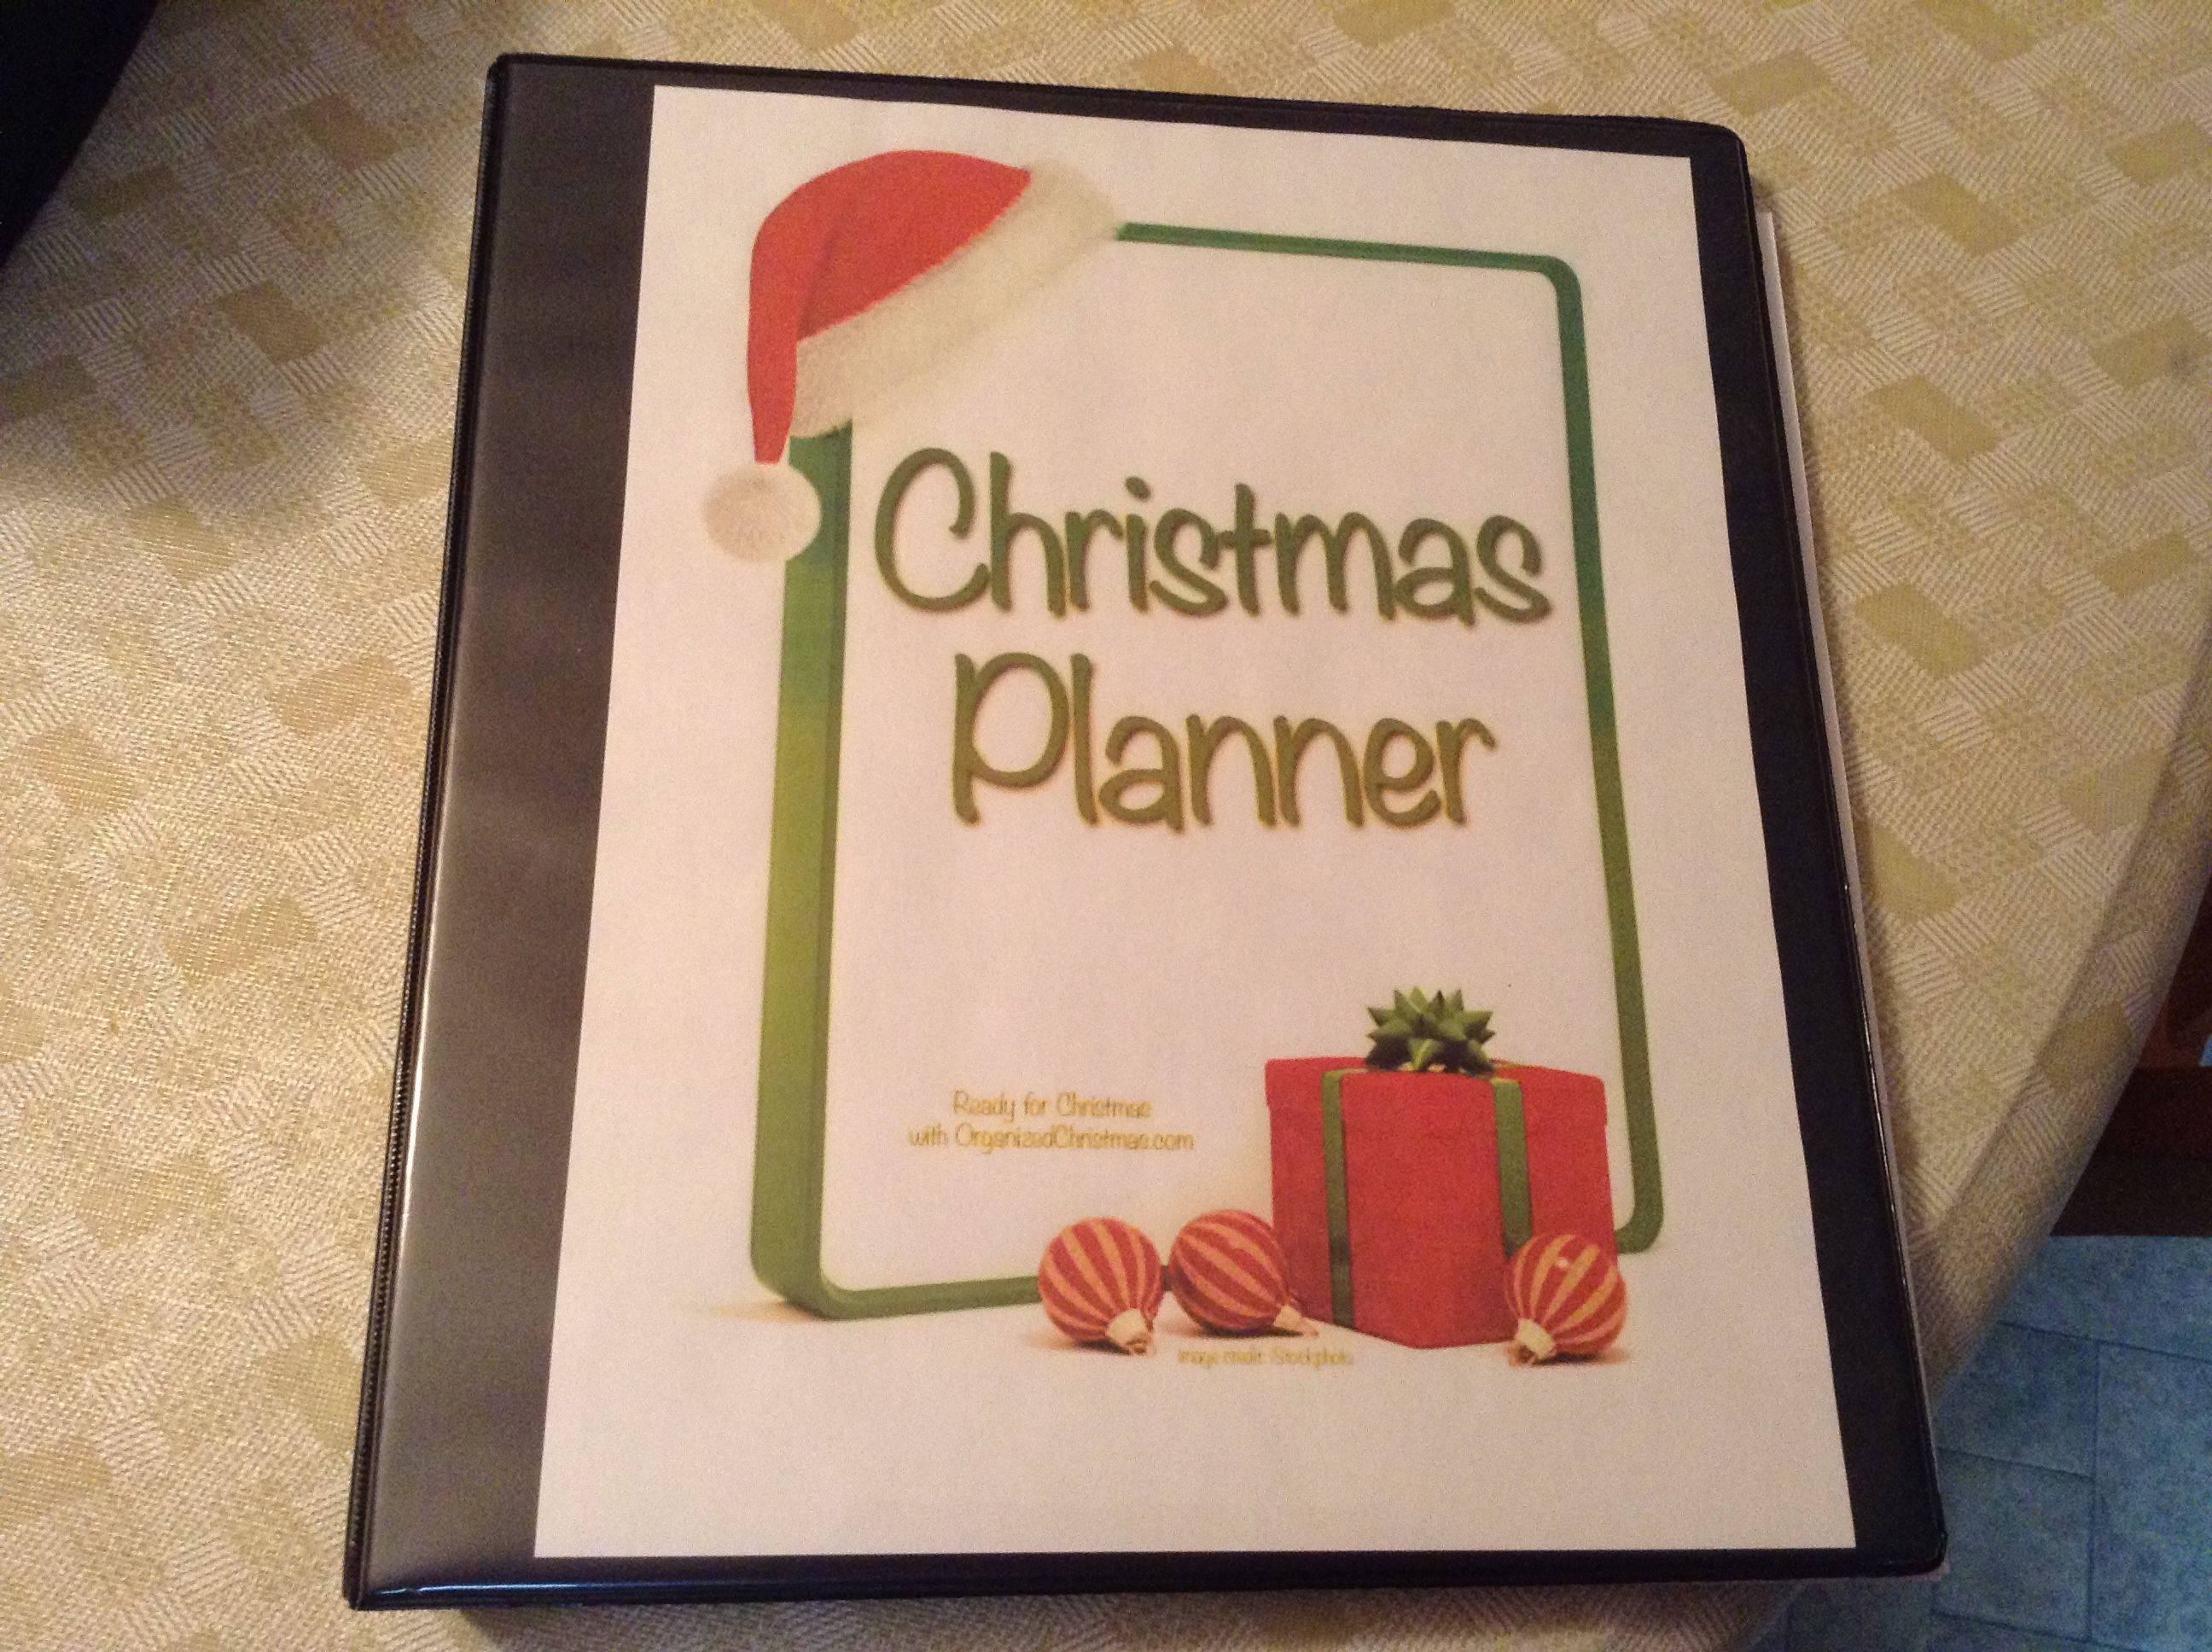 Do You Have A Holiday Planner To Get You Organized For The